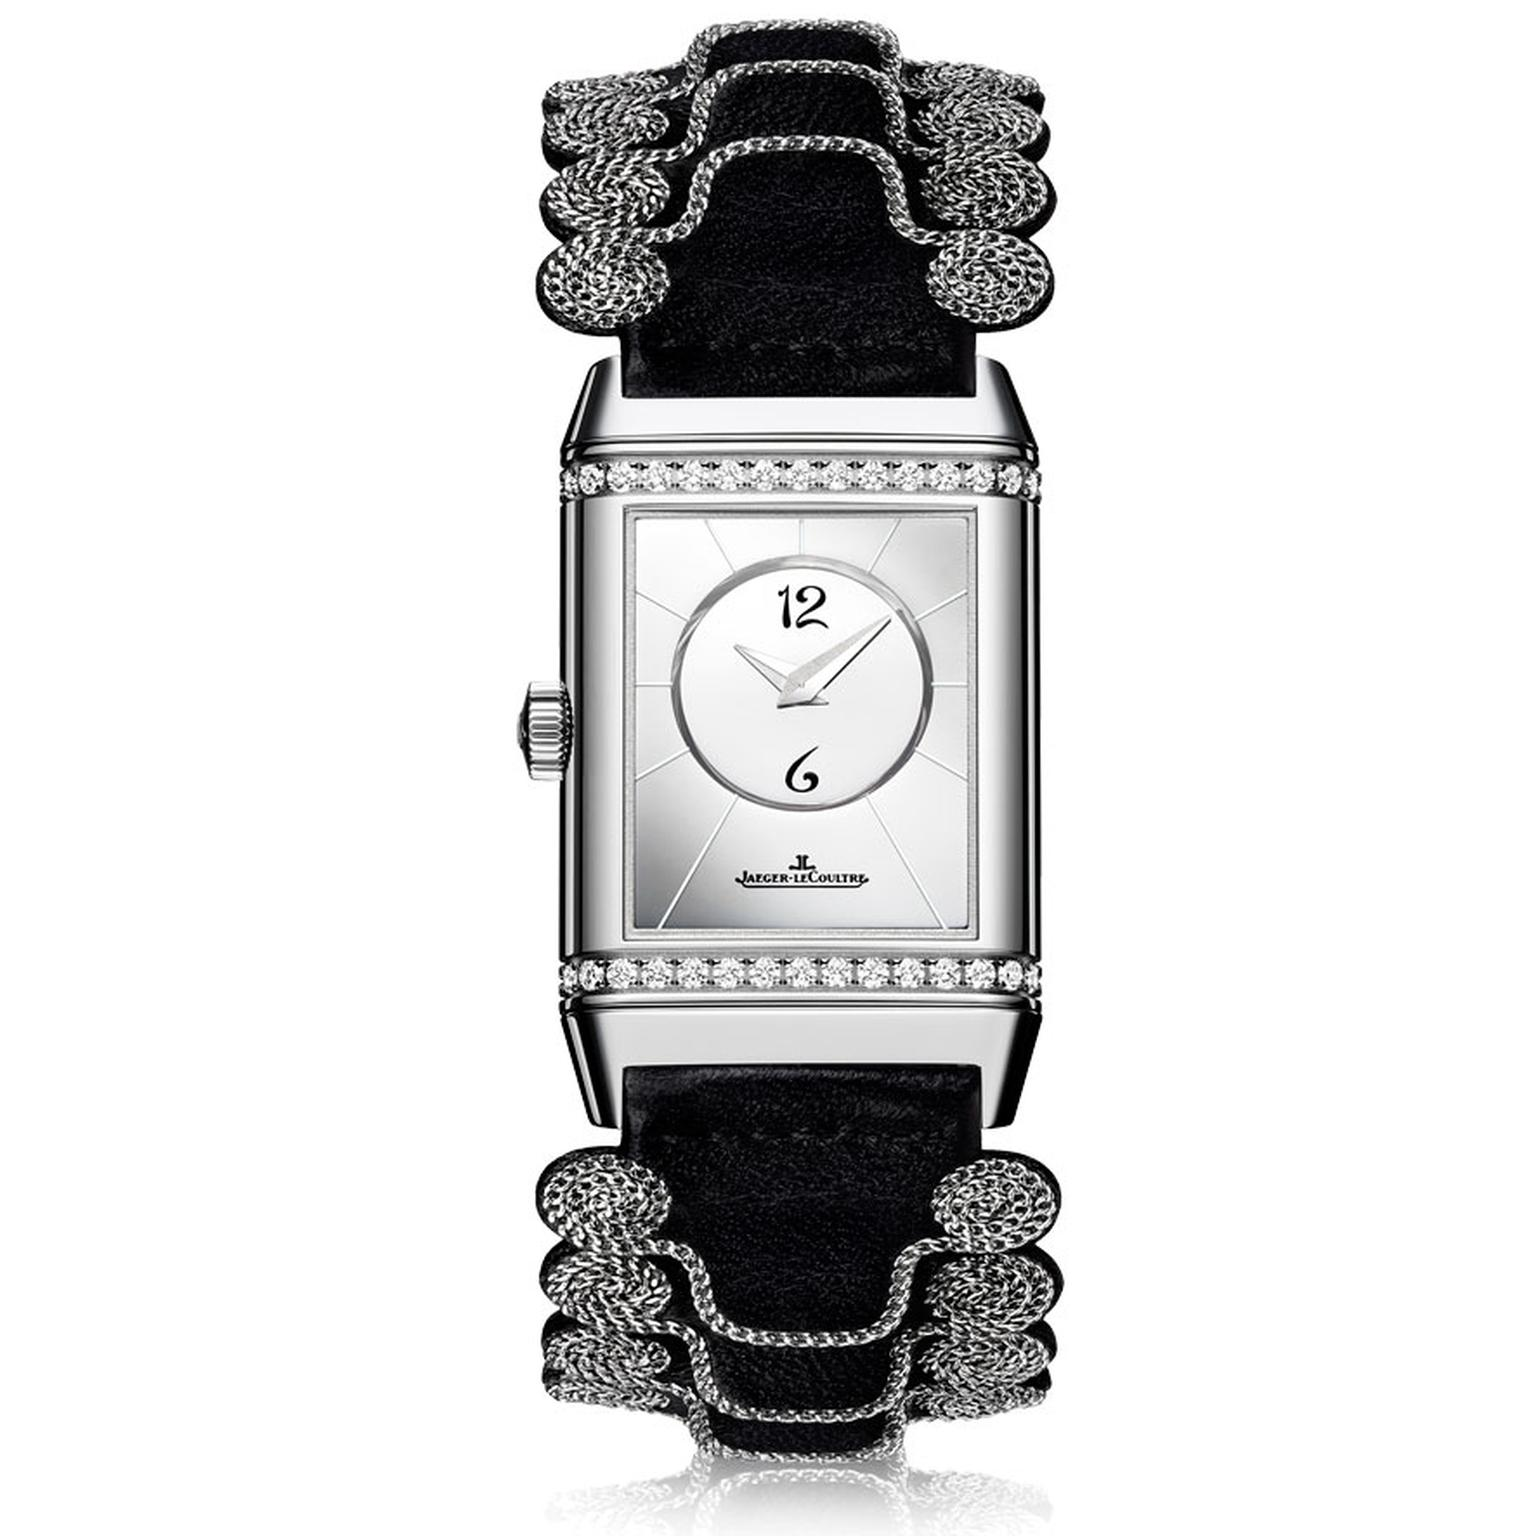 Jaeger-LeCoultre Reverso Duetto Louboutin Officer strap black